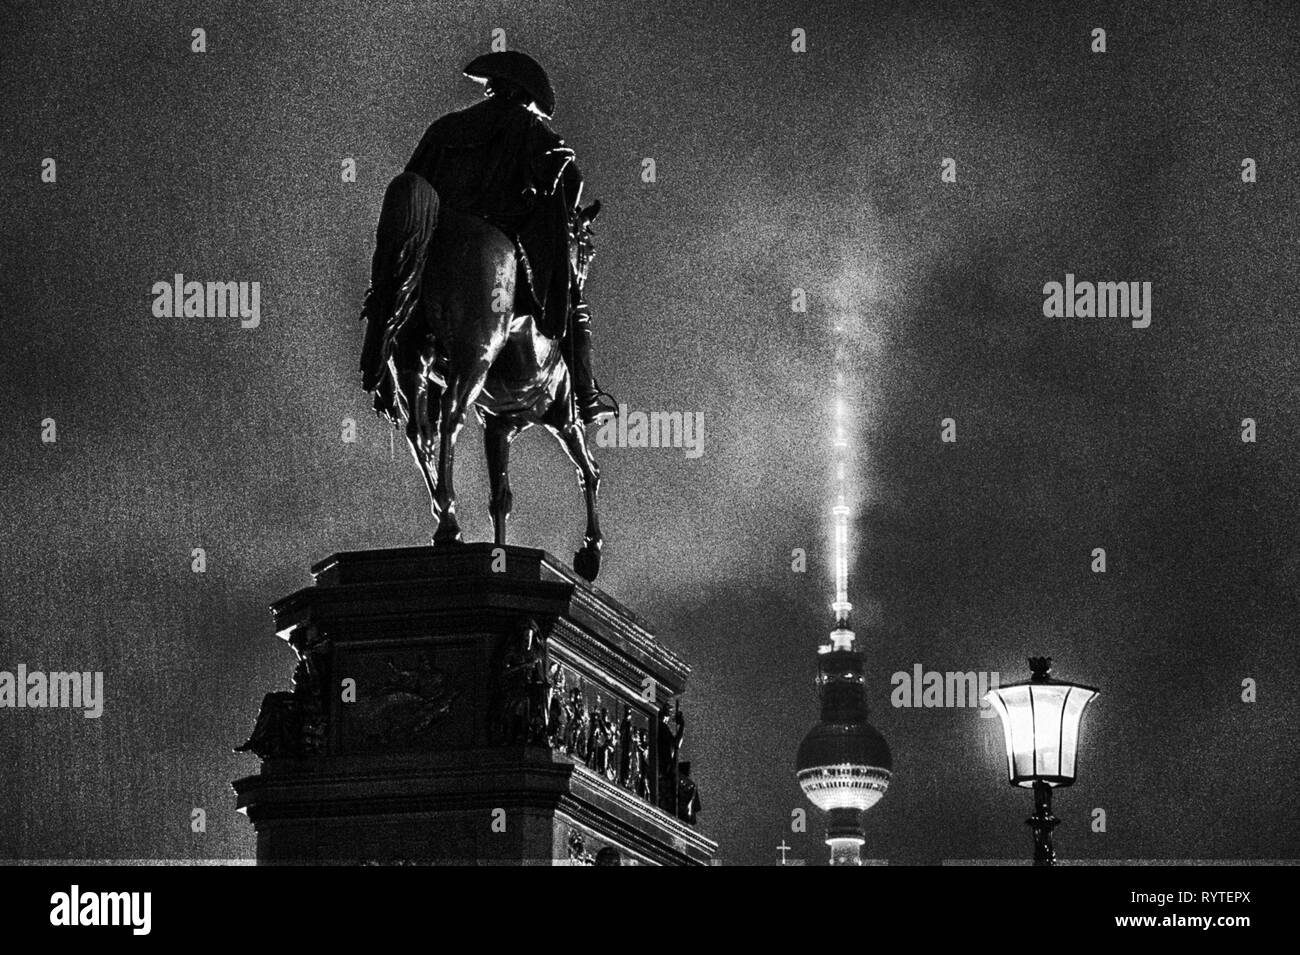 Berlin, Germany. 12th Jan, 2019. A statue of the Prussian king Frederick the Great, popularly called the 'Old Fritz', stands in the drizzle on the magnificent avenue Unter den Linden. In the background is the television tower. Credit: Stefan Jaitner/dpa/Alamy Live News - Stock Image